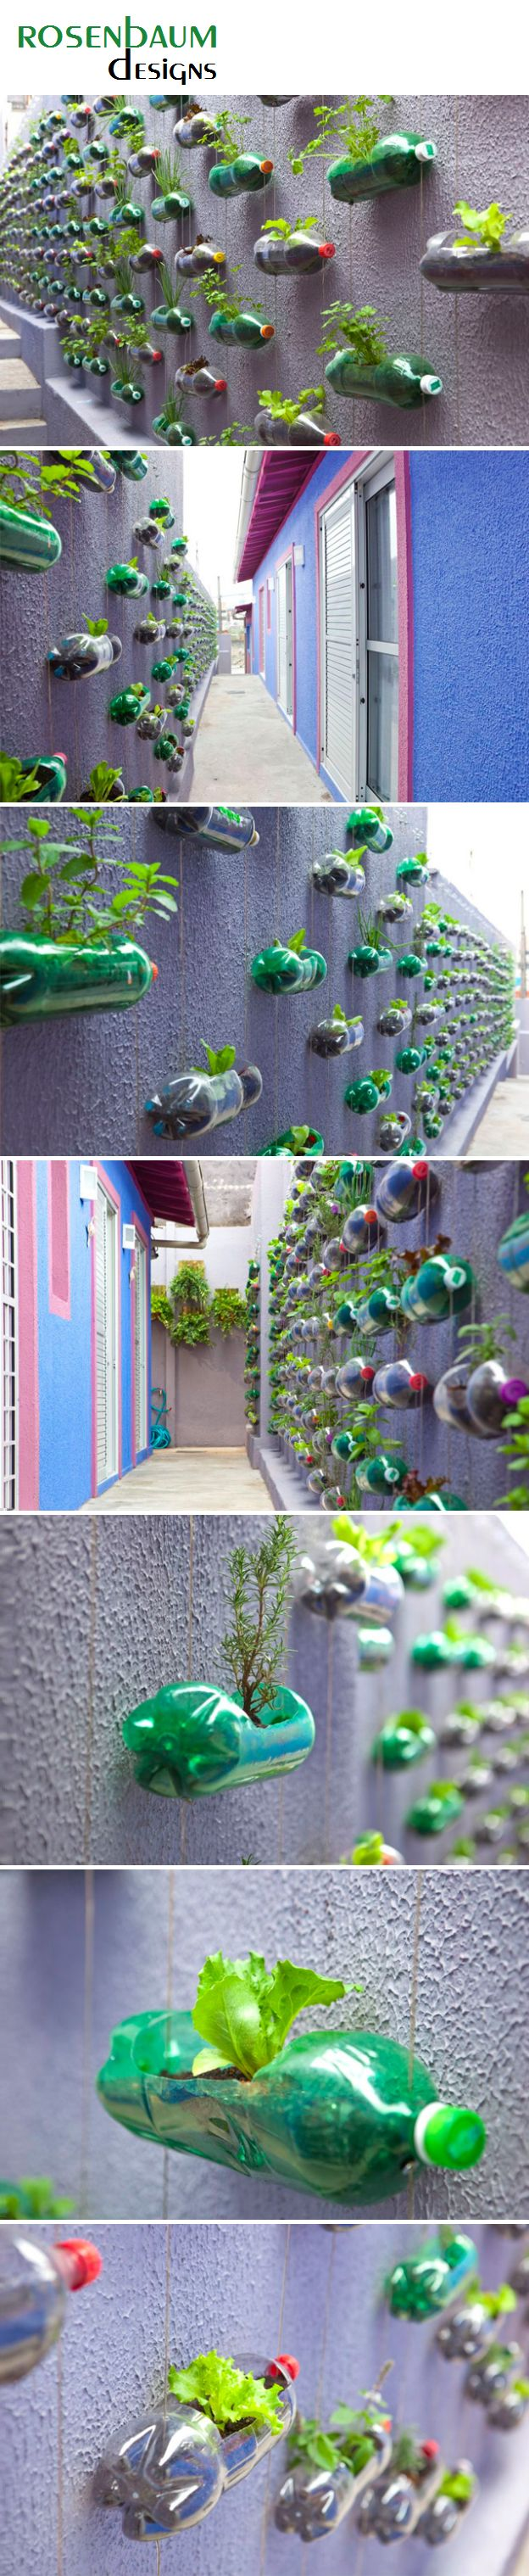 Impressive looking vertical bottle garden